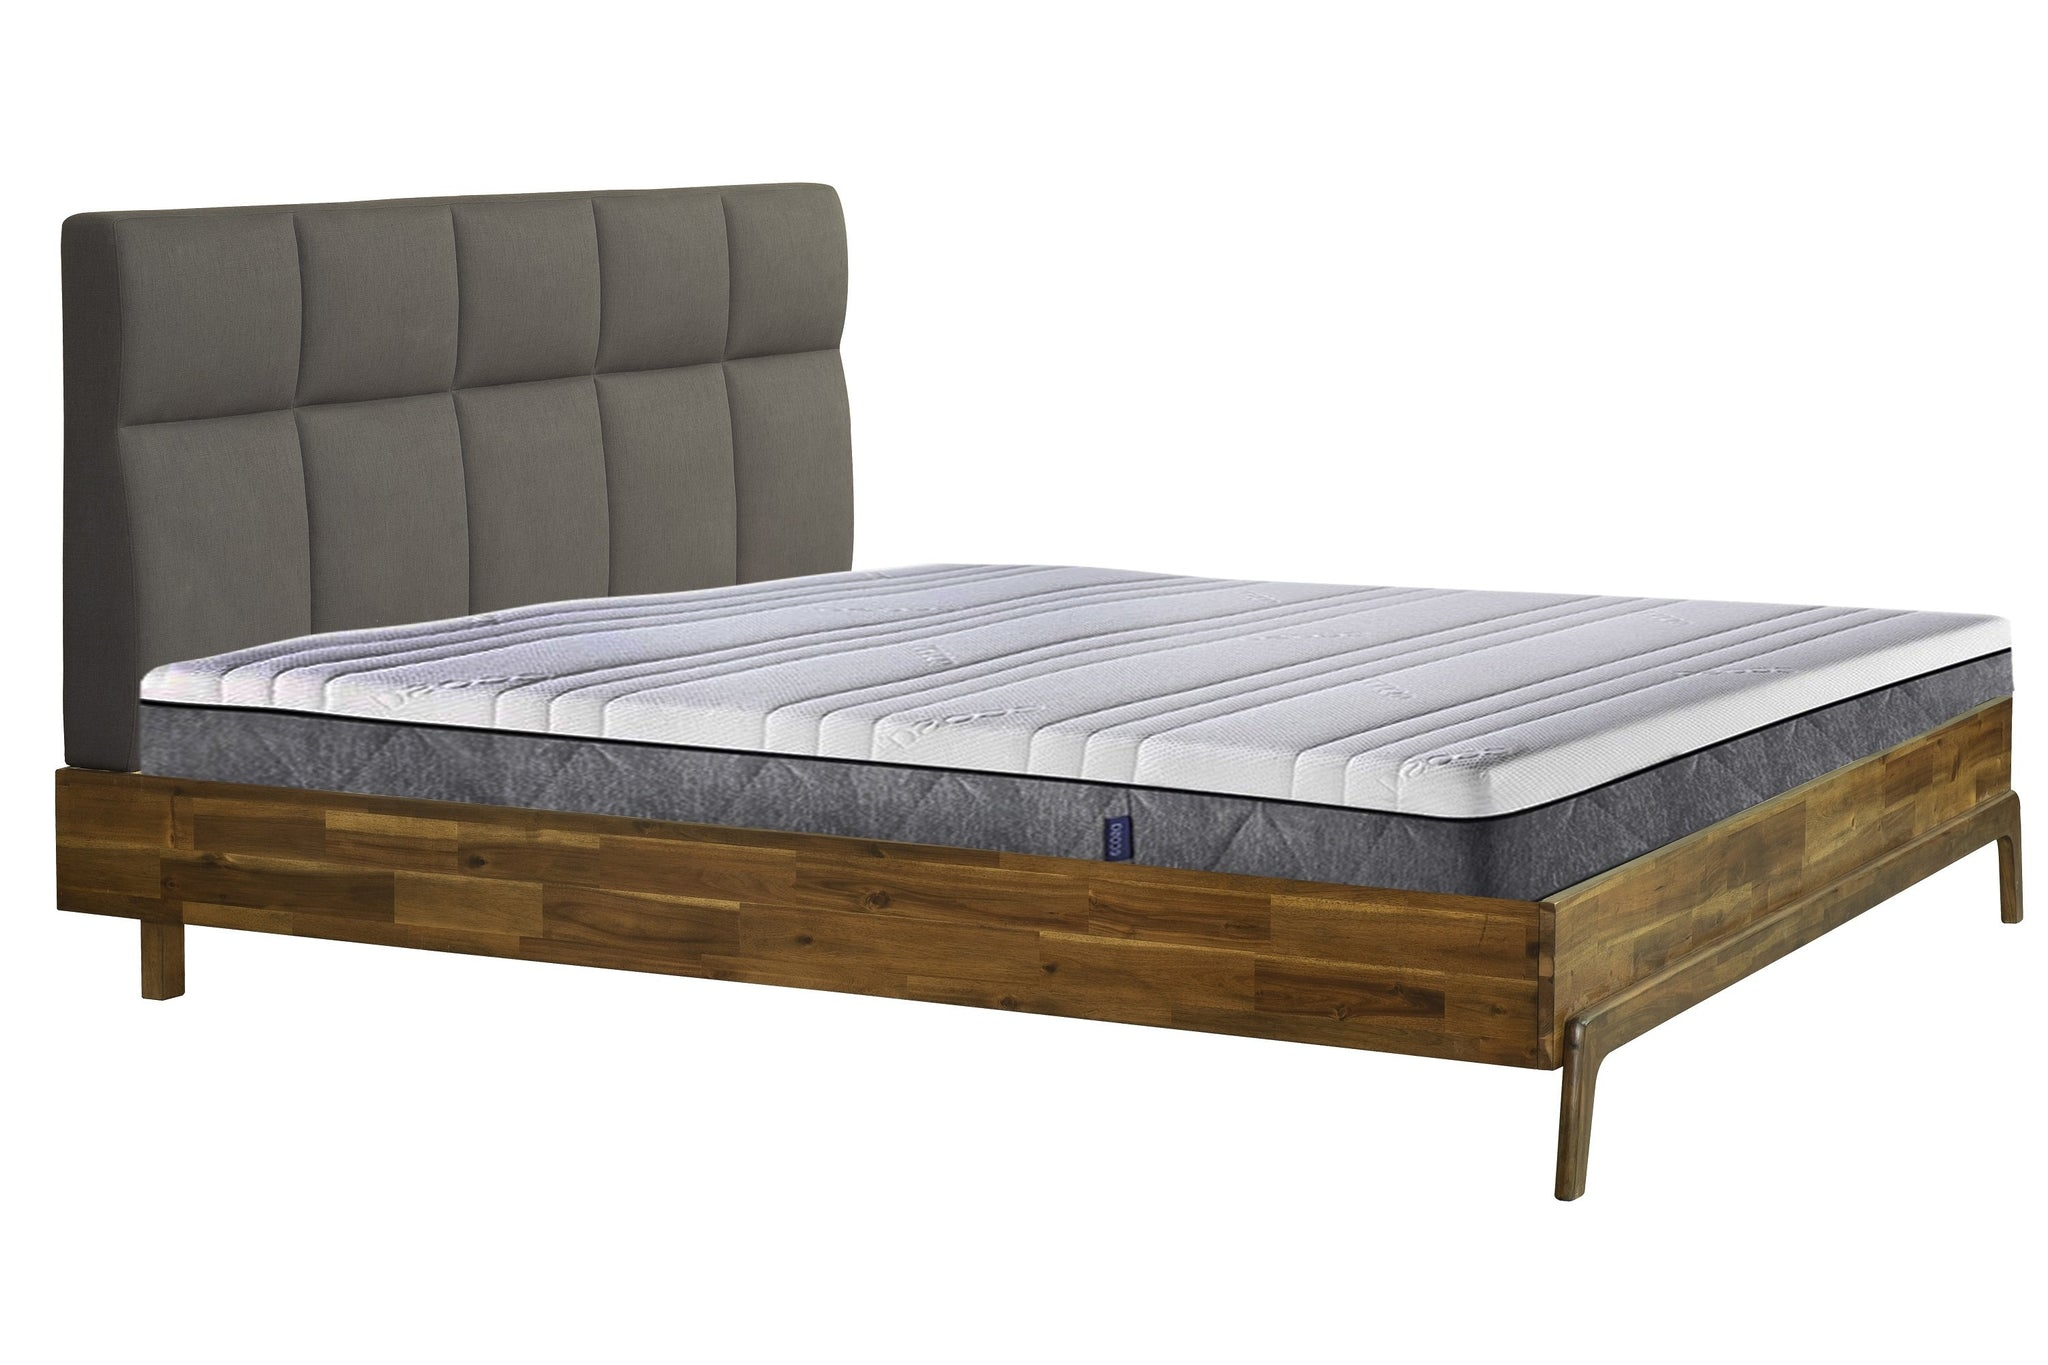 Picture of Remix King Bed - Headboard + Footboard - Grey